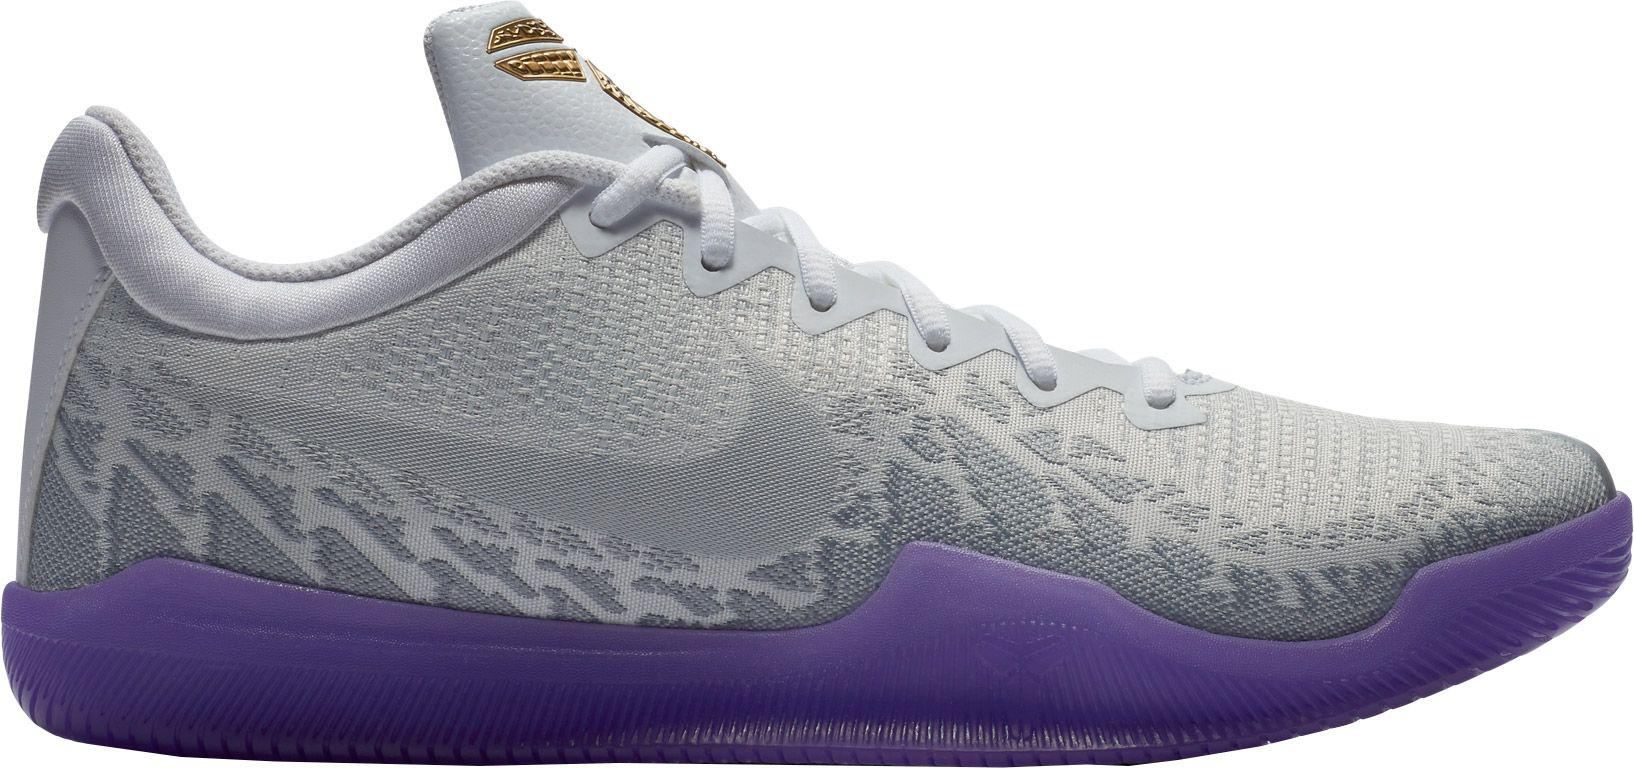 f2f200a4df3 Nike - Multicolor Kobe Mamba Rage Basketball Shoes for Men - Lyst